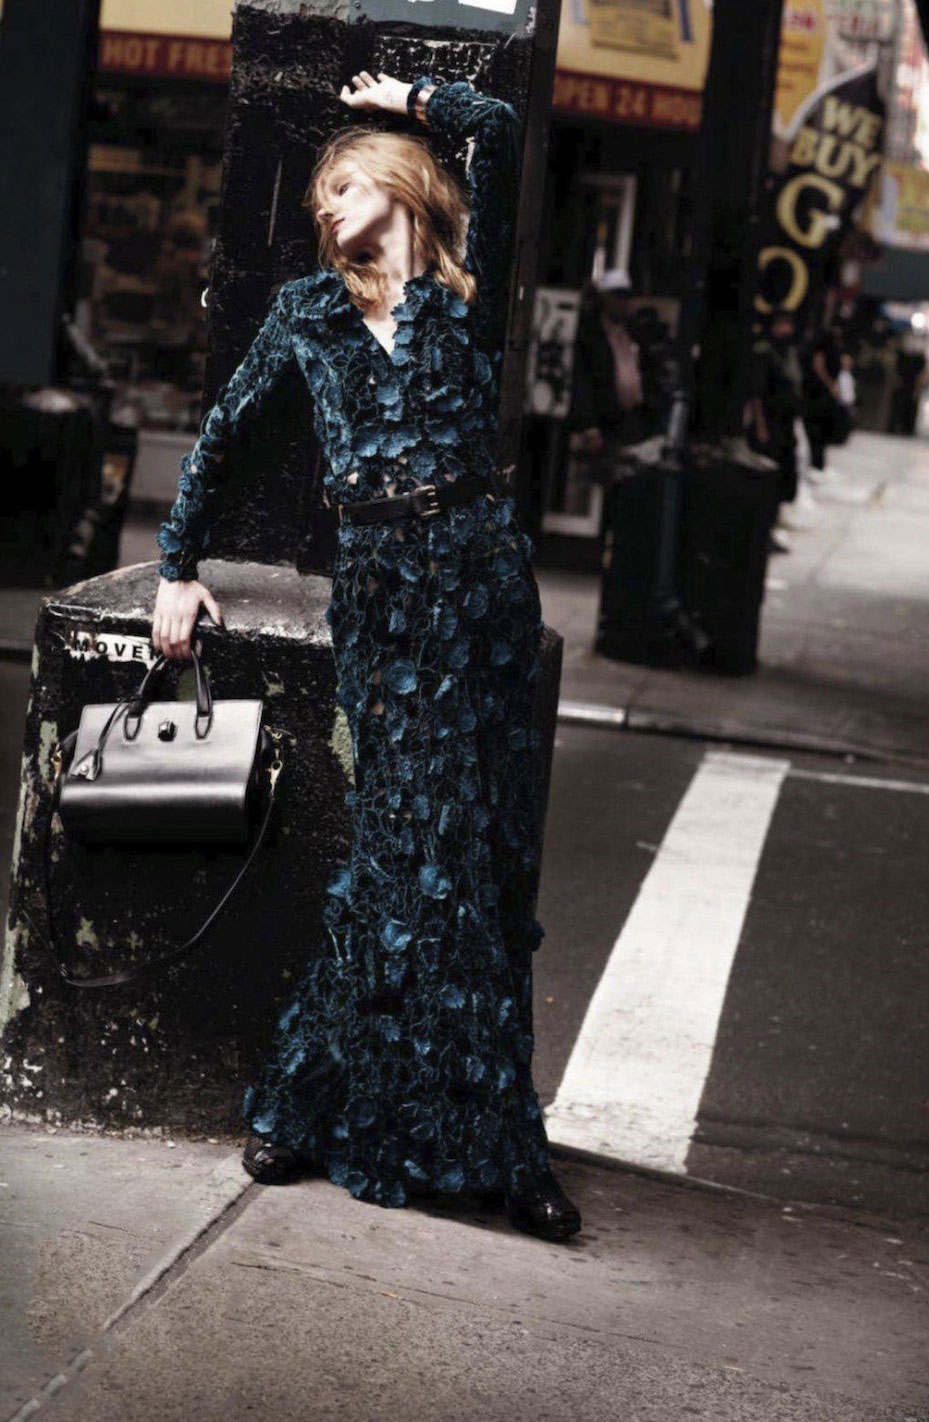 Olga Sherer wearing Oscar de la Renta floral appliqué gown in Elle US October 2012 (photography: Serge Leblon, styling: Mattias Karlsson)